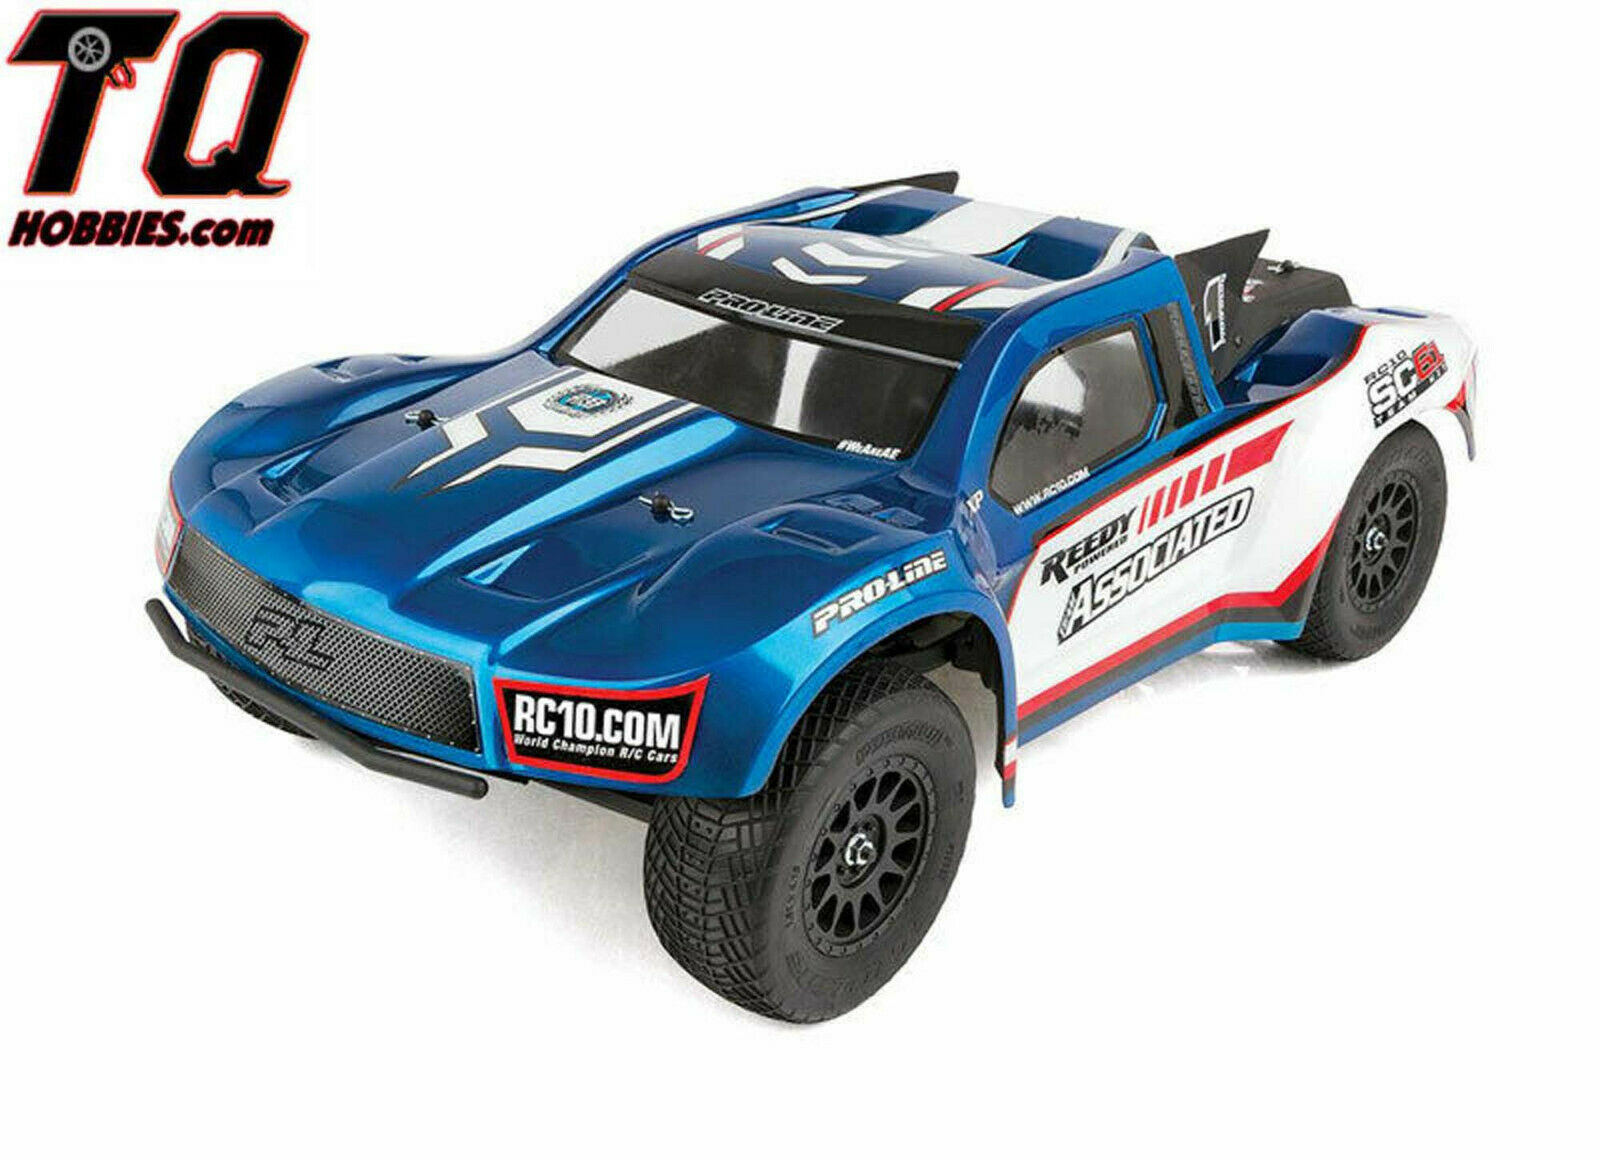 Team Associated 70007 RC10SC6.1 Team Edition Off Road 1 10 Short Course Tr 70007